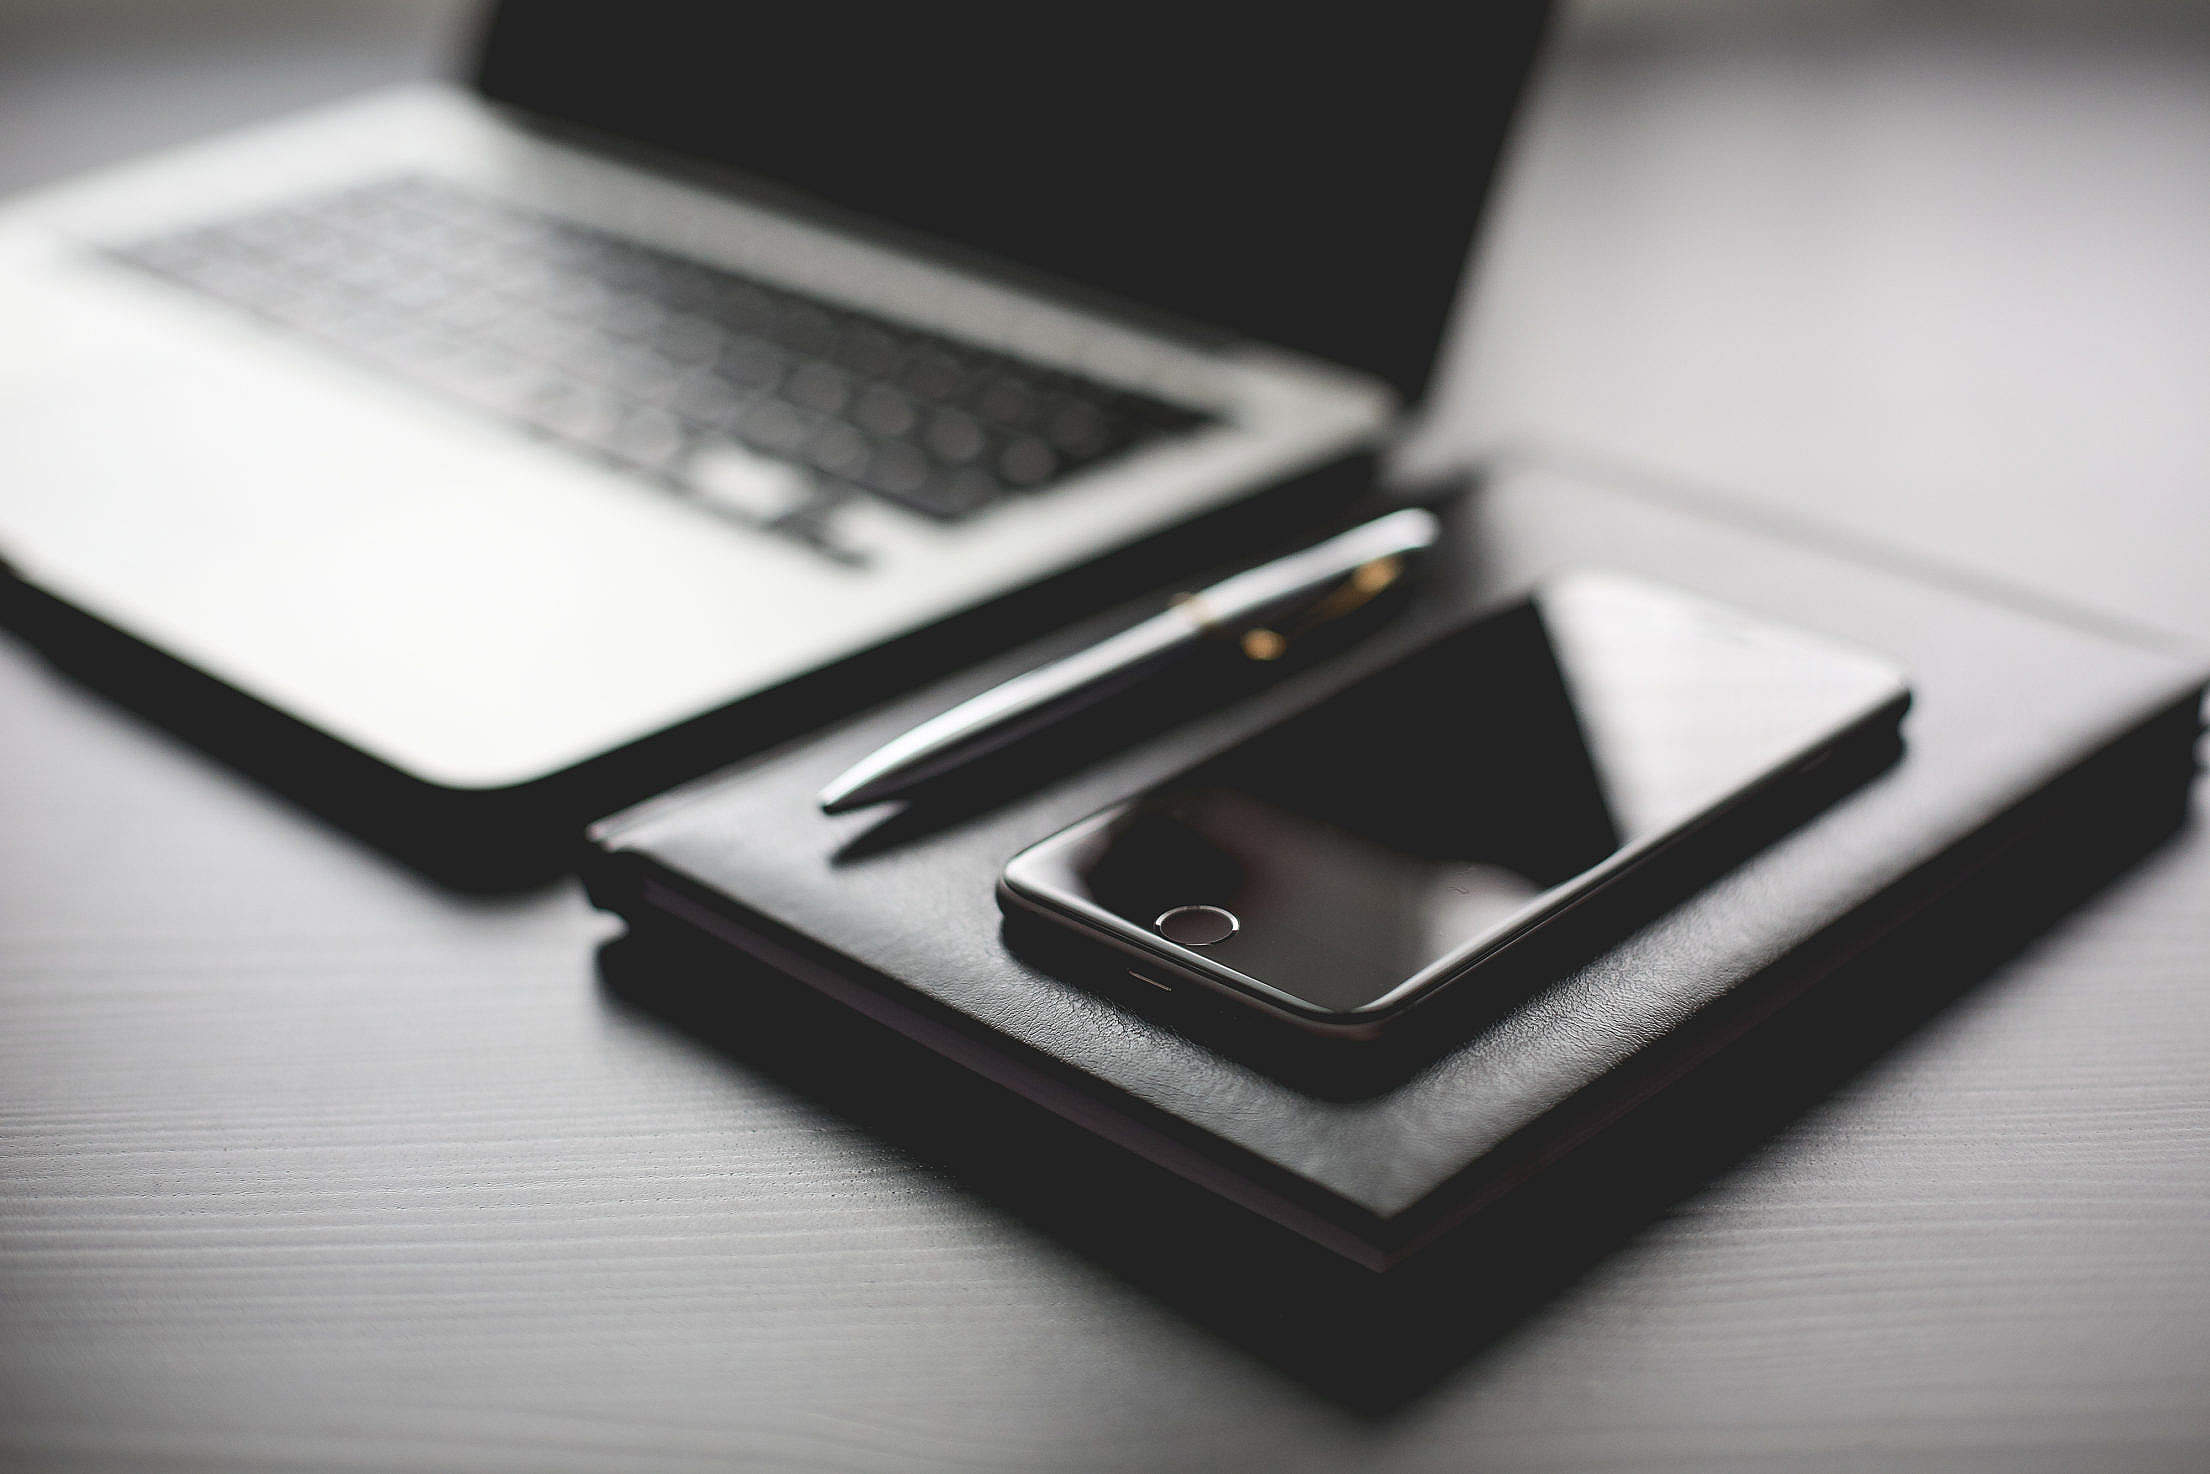 All Black Working Setup: Diary and iPhone Free Stock Photo